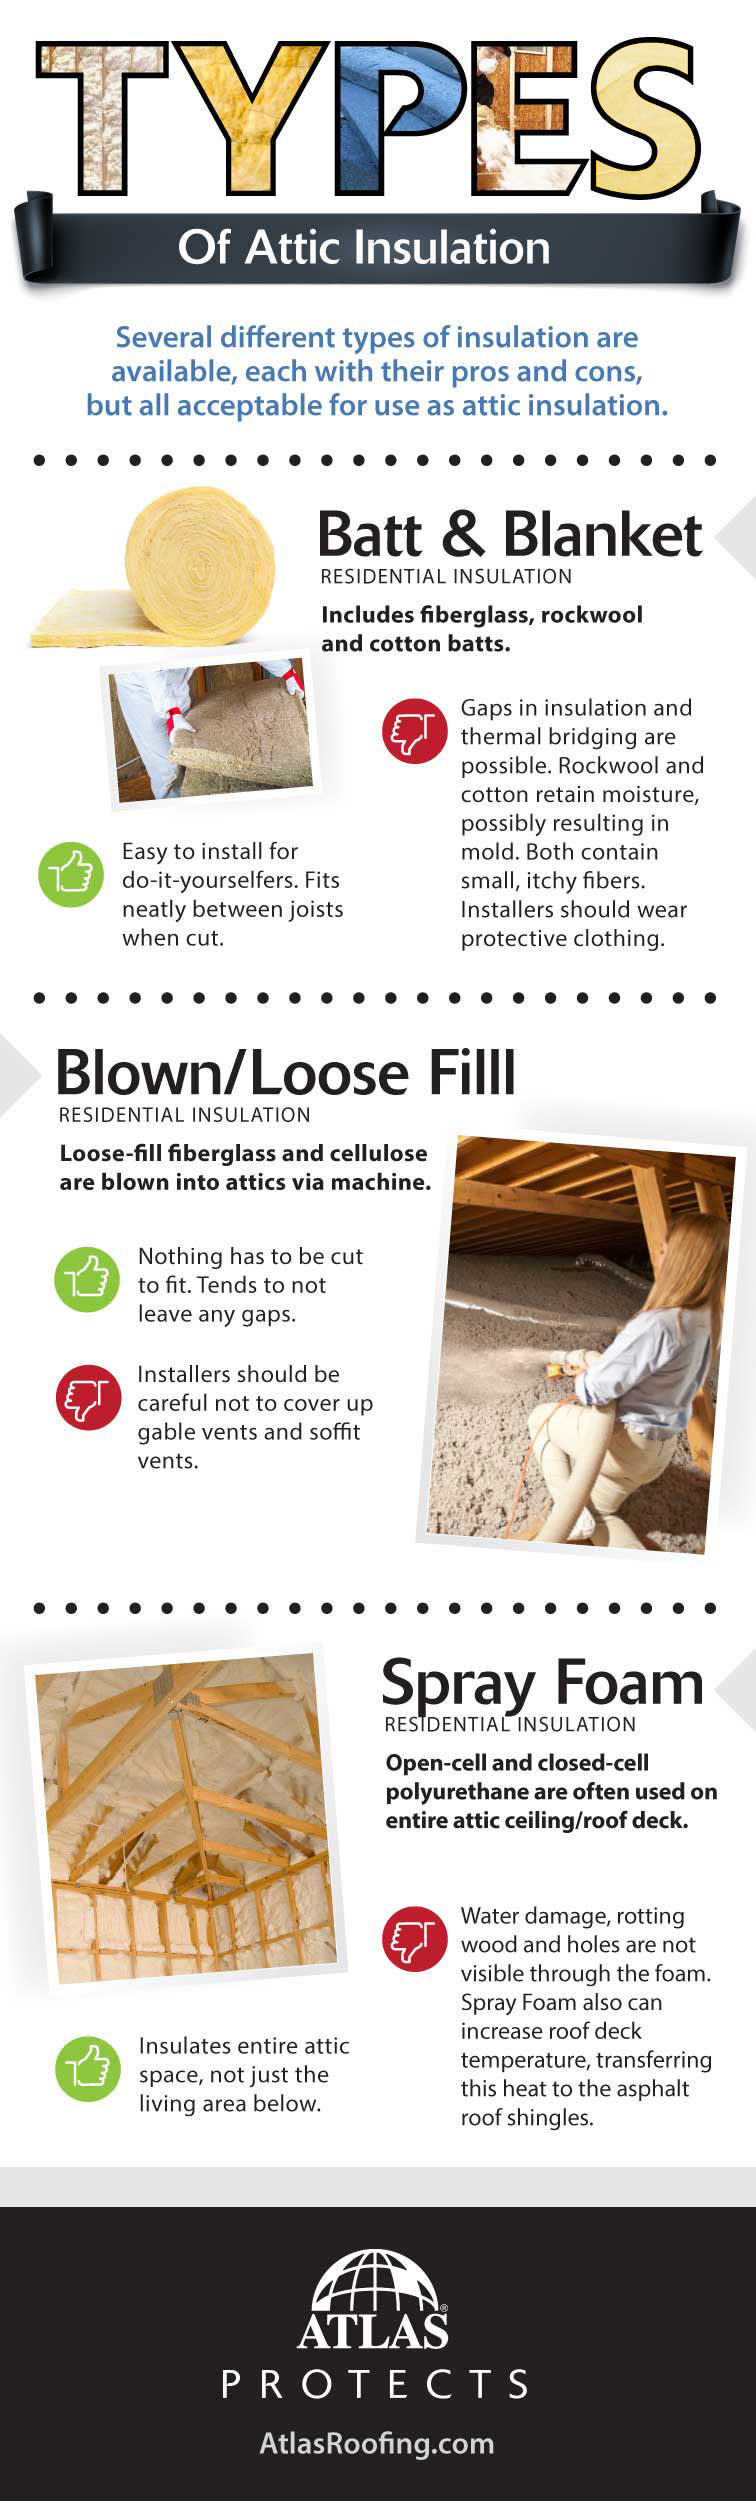 Types of Attic Insulation Infographic